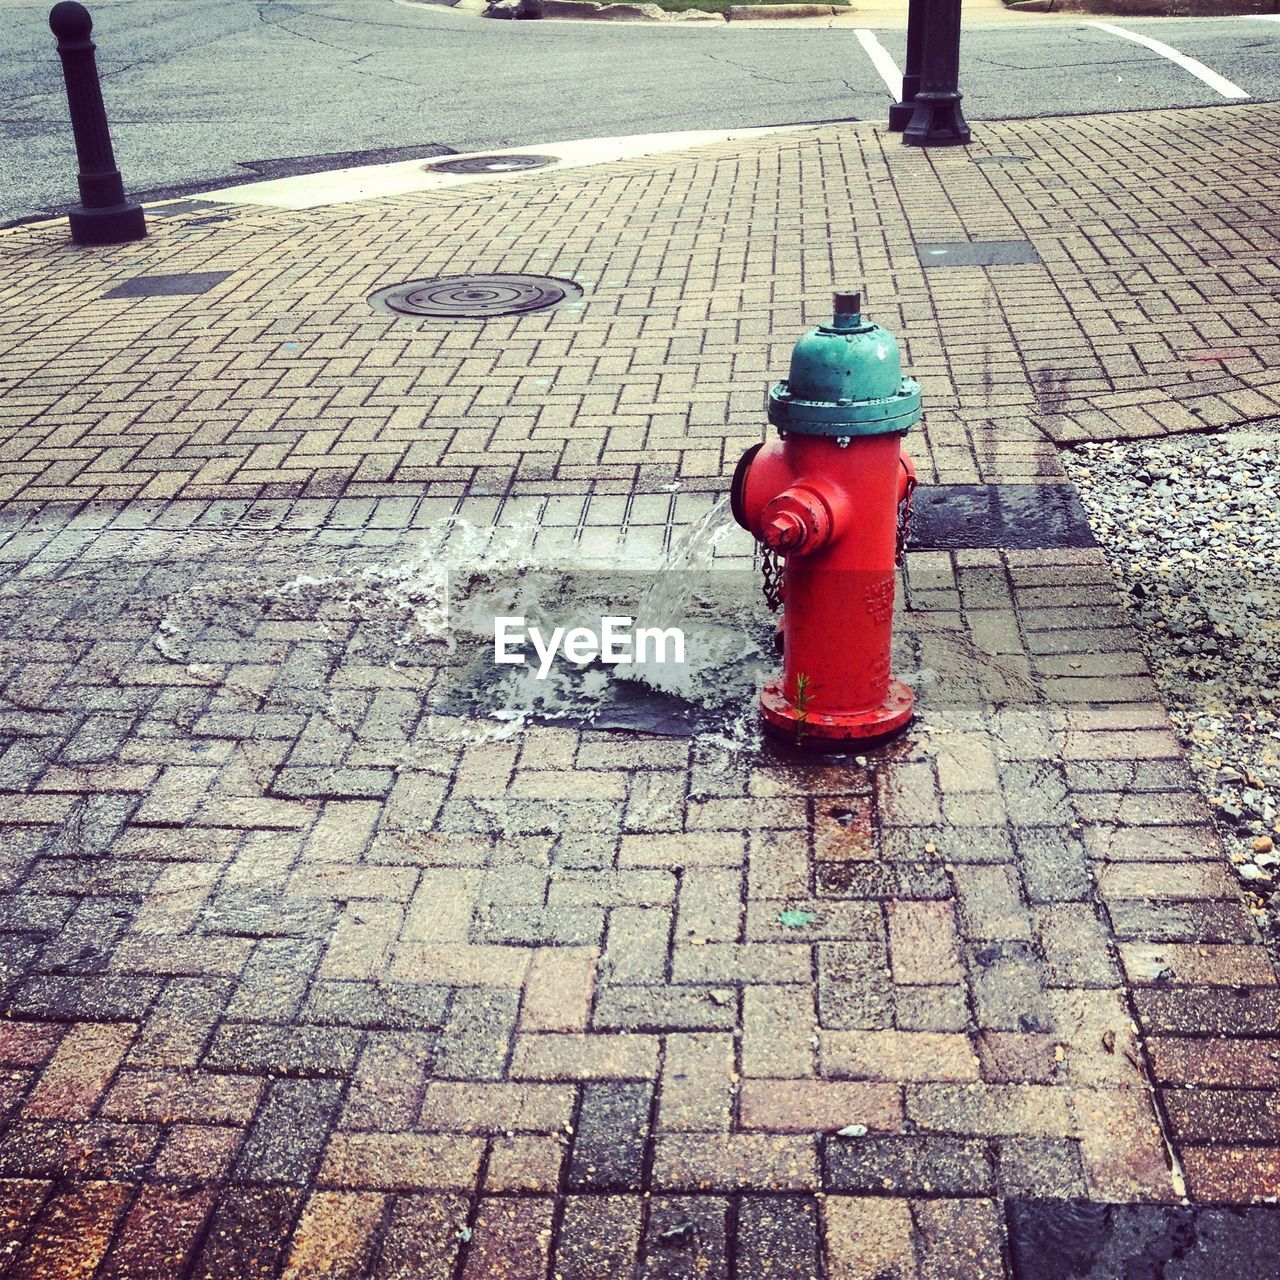 cobblestone, fire hydrant, safety, outdoors, day, protection, street, sidewalk, red, stone tile, no people, water